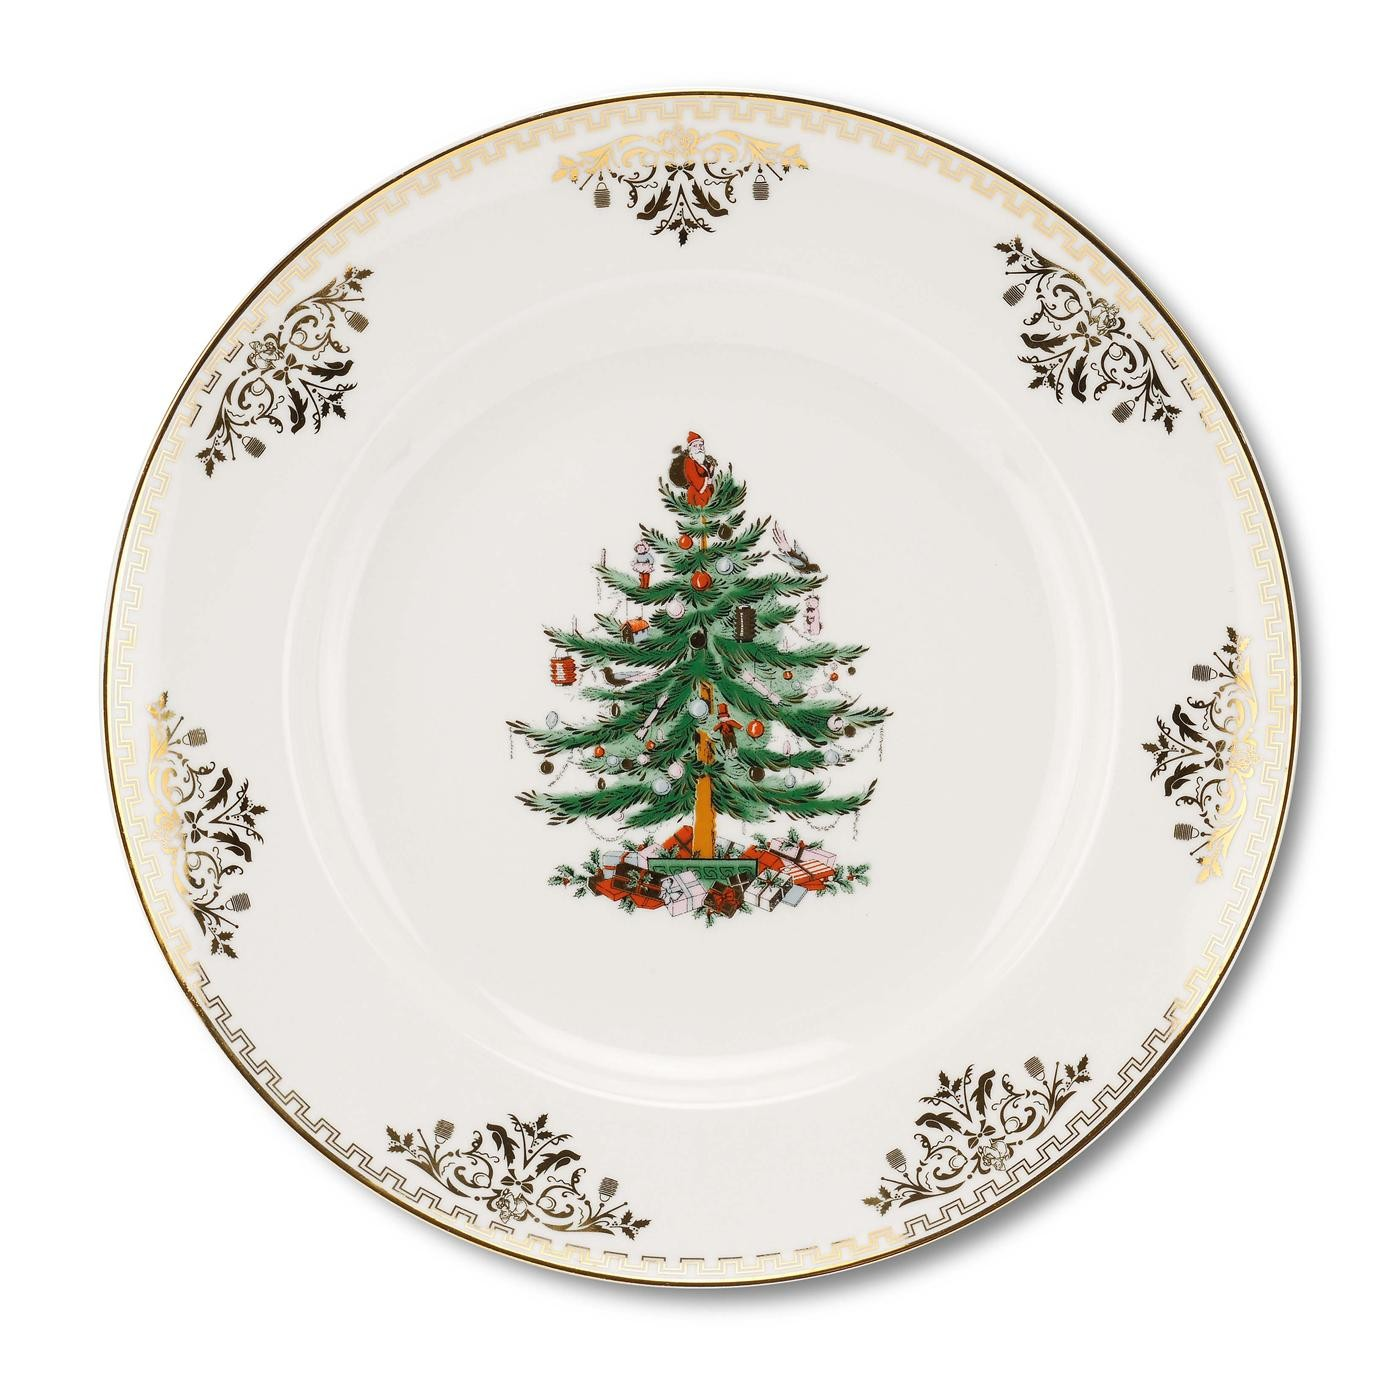 Spode Christmas Tree Gold Dinner Plate  sc 1 st  Distinctive Decor & Spode Christmas Tree Gold Dinner Plate $30 You Save $30.00